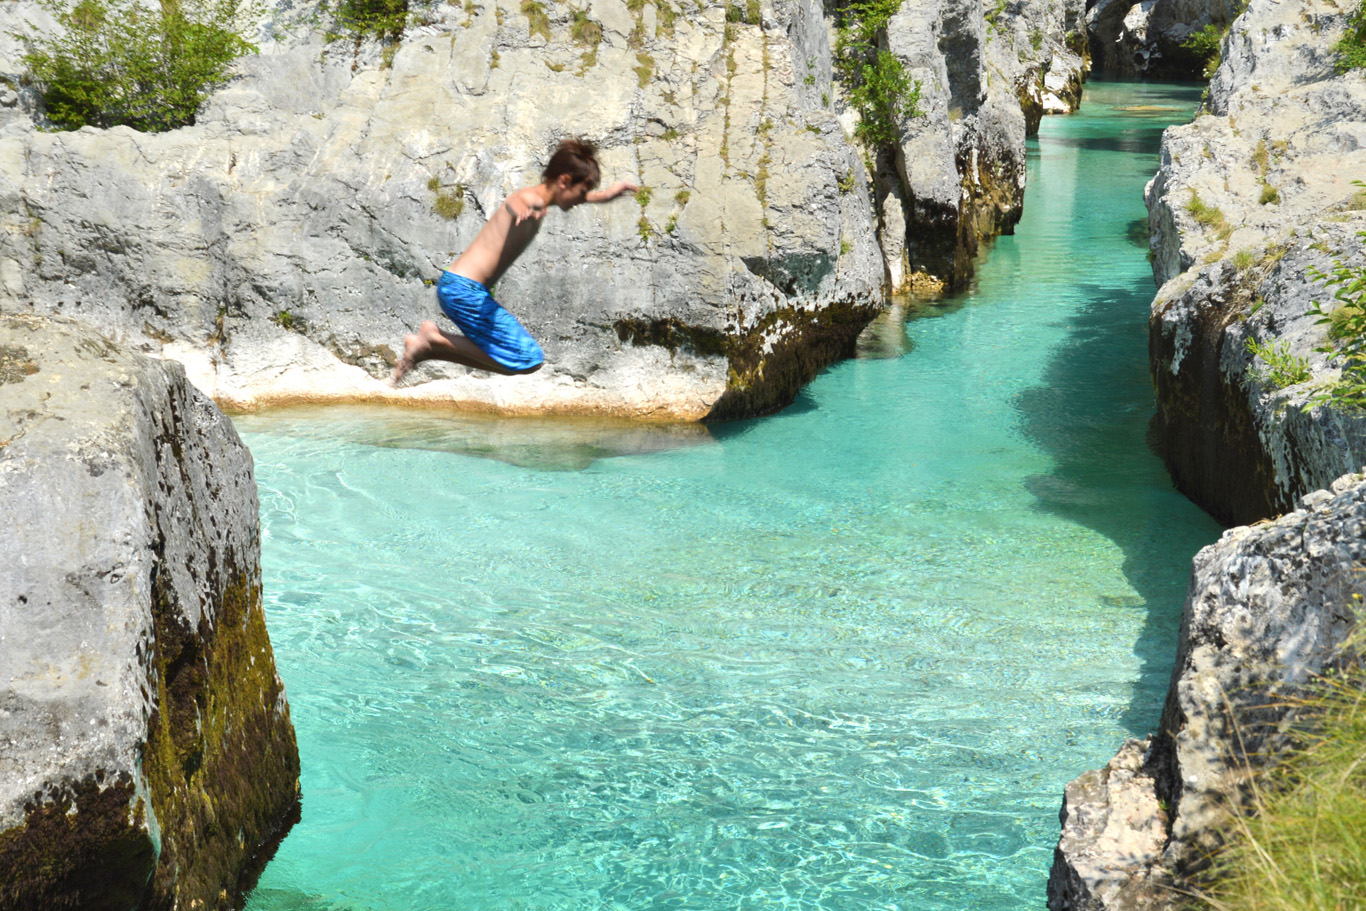 A boy jumping into the turquoise waters of Soca River